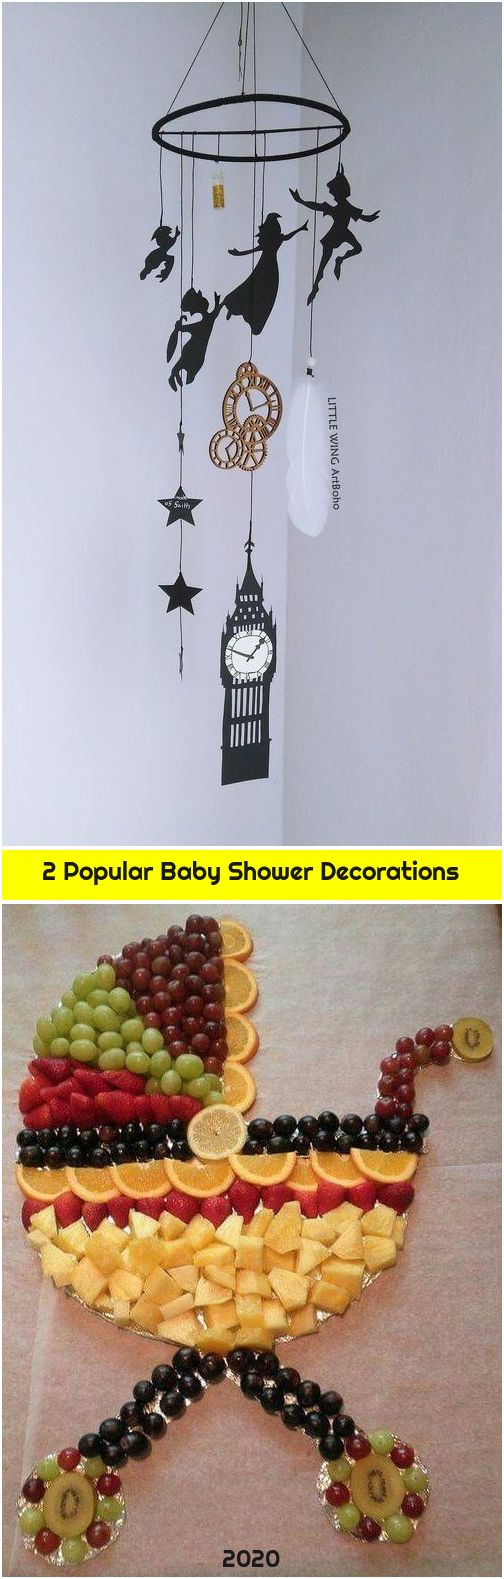 2 Popular Baby Shower Decorations